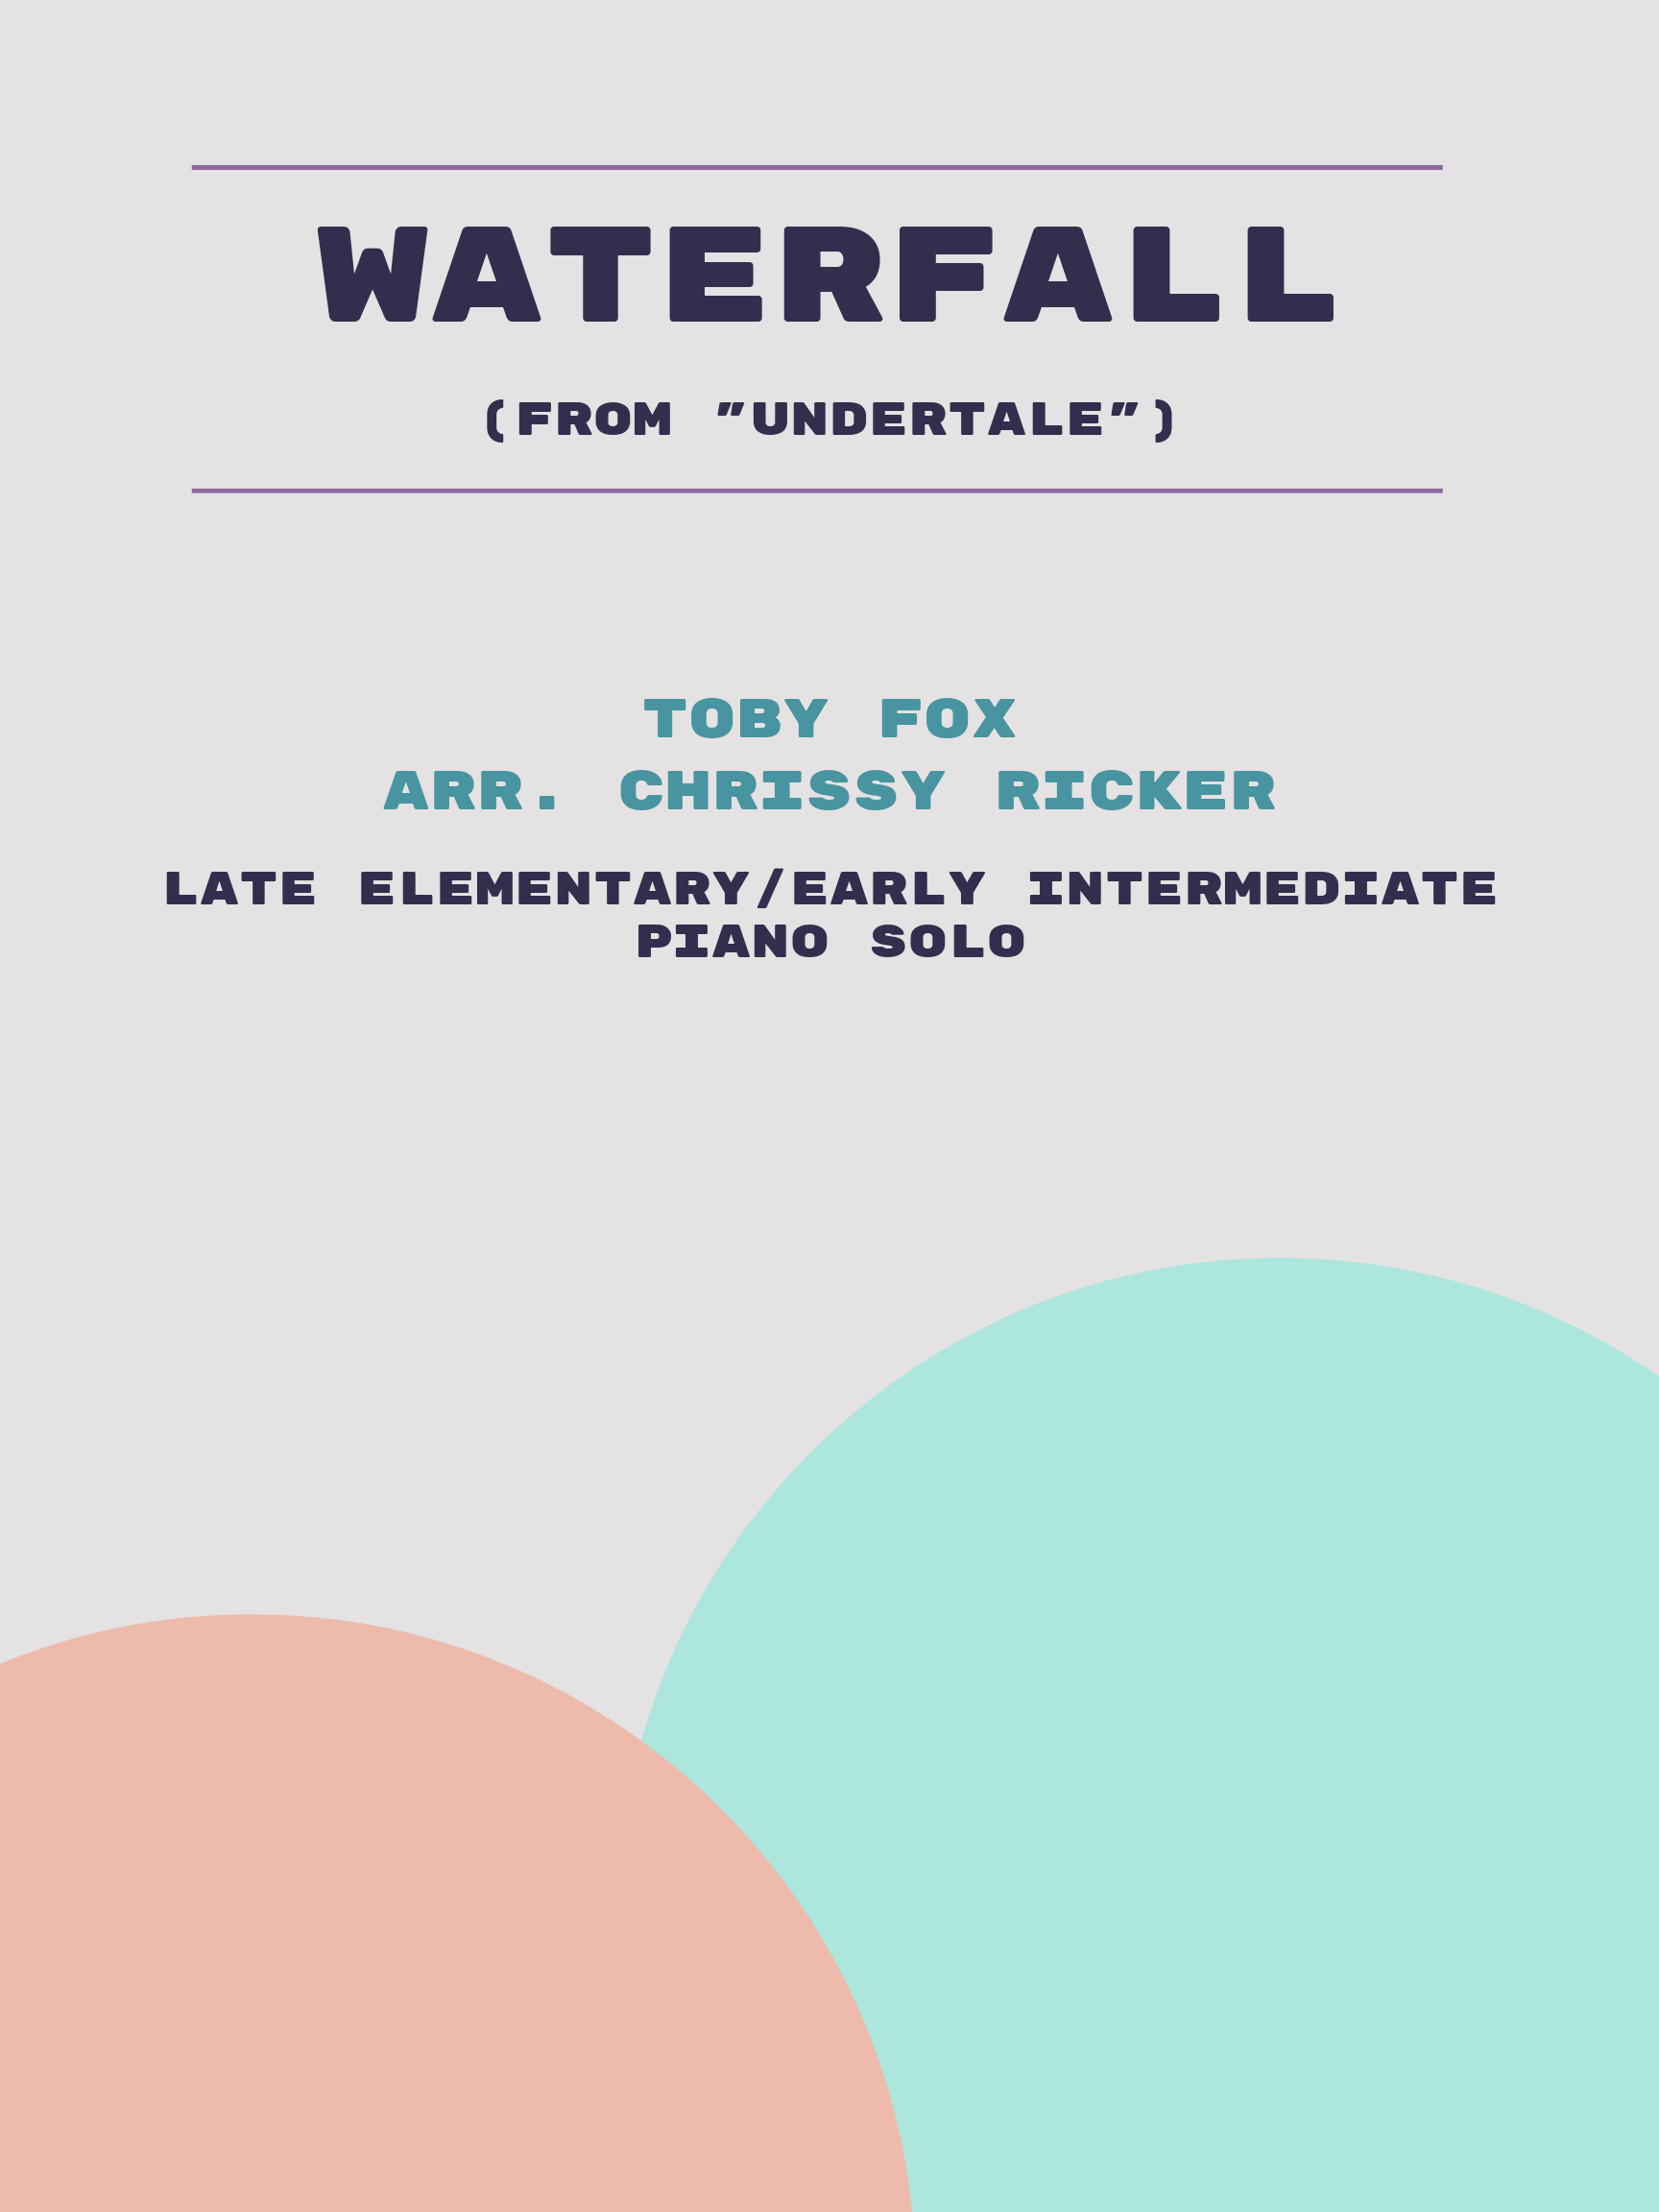 Waterfall by Toby Fox